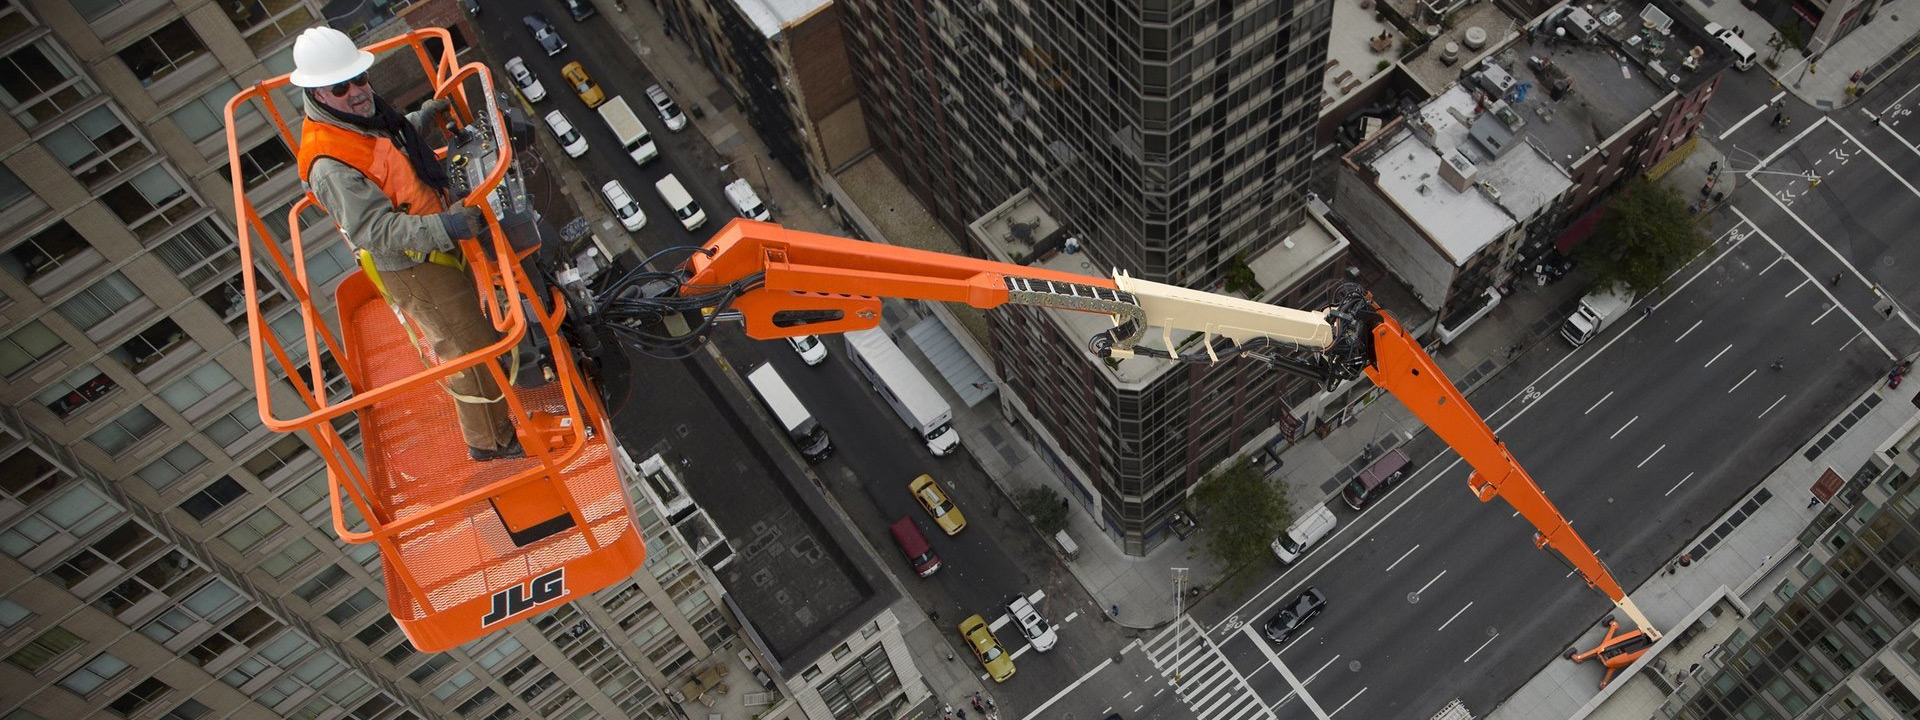 Studying Aerial Work Platforms and Operators